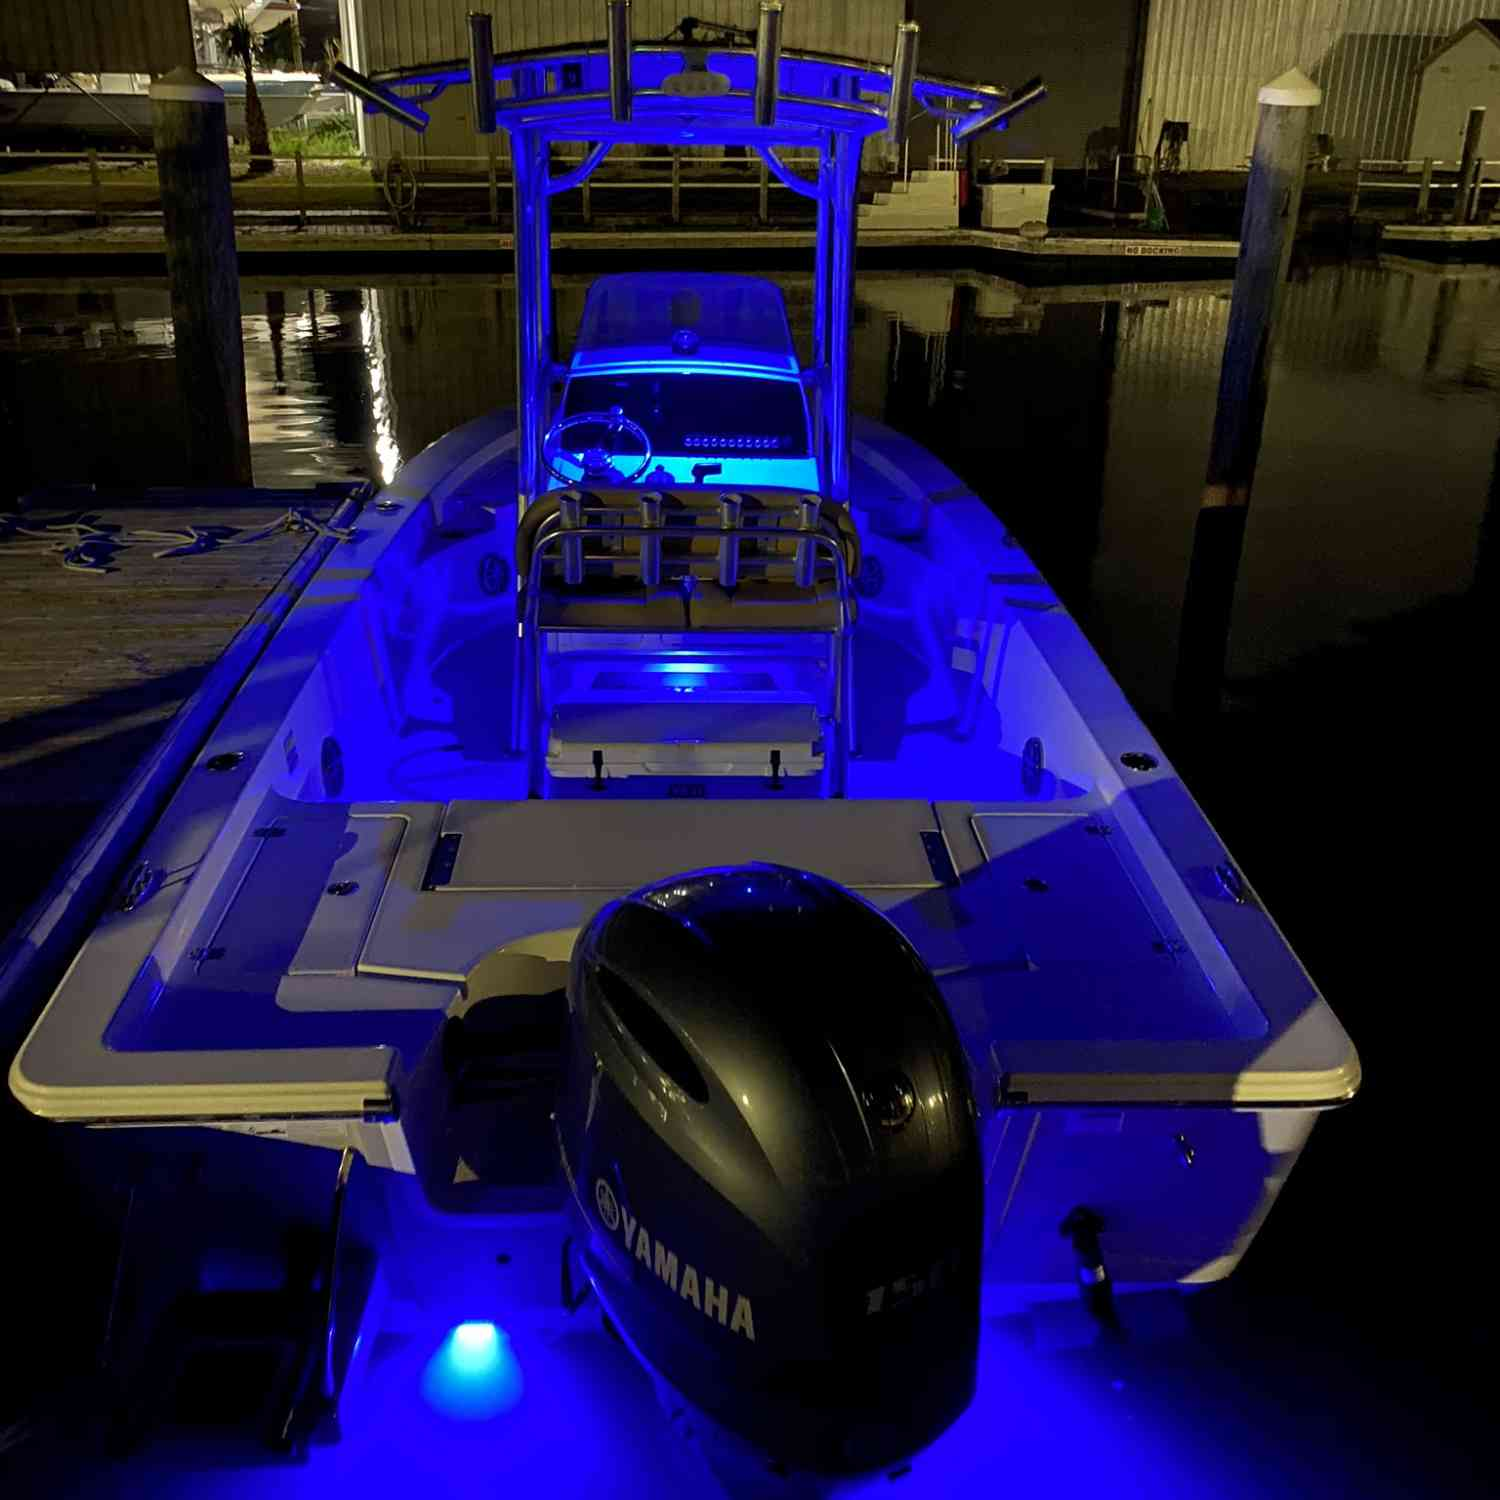 Title: Lit up - On board their Sportsman Masters 227 Bay Boat - Location: Atlantic beach NC. Participating in the Photo Contest #SportsmanDecember2020